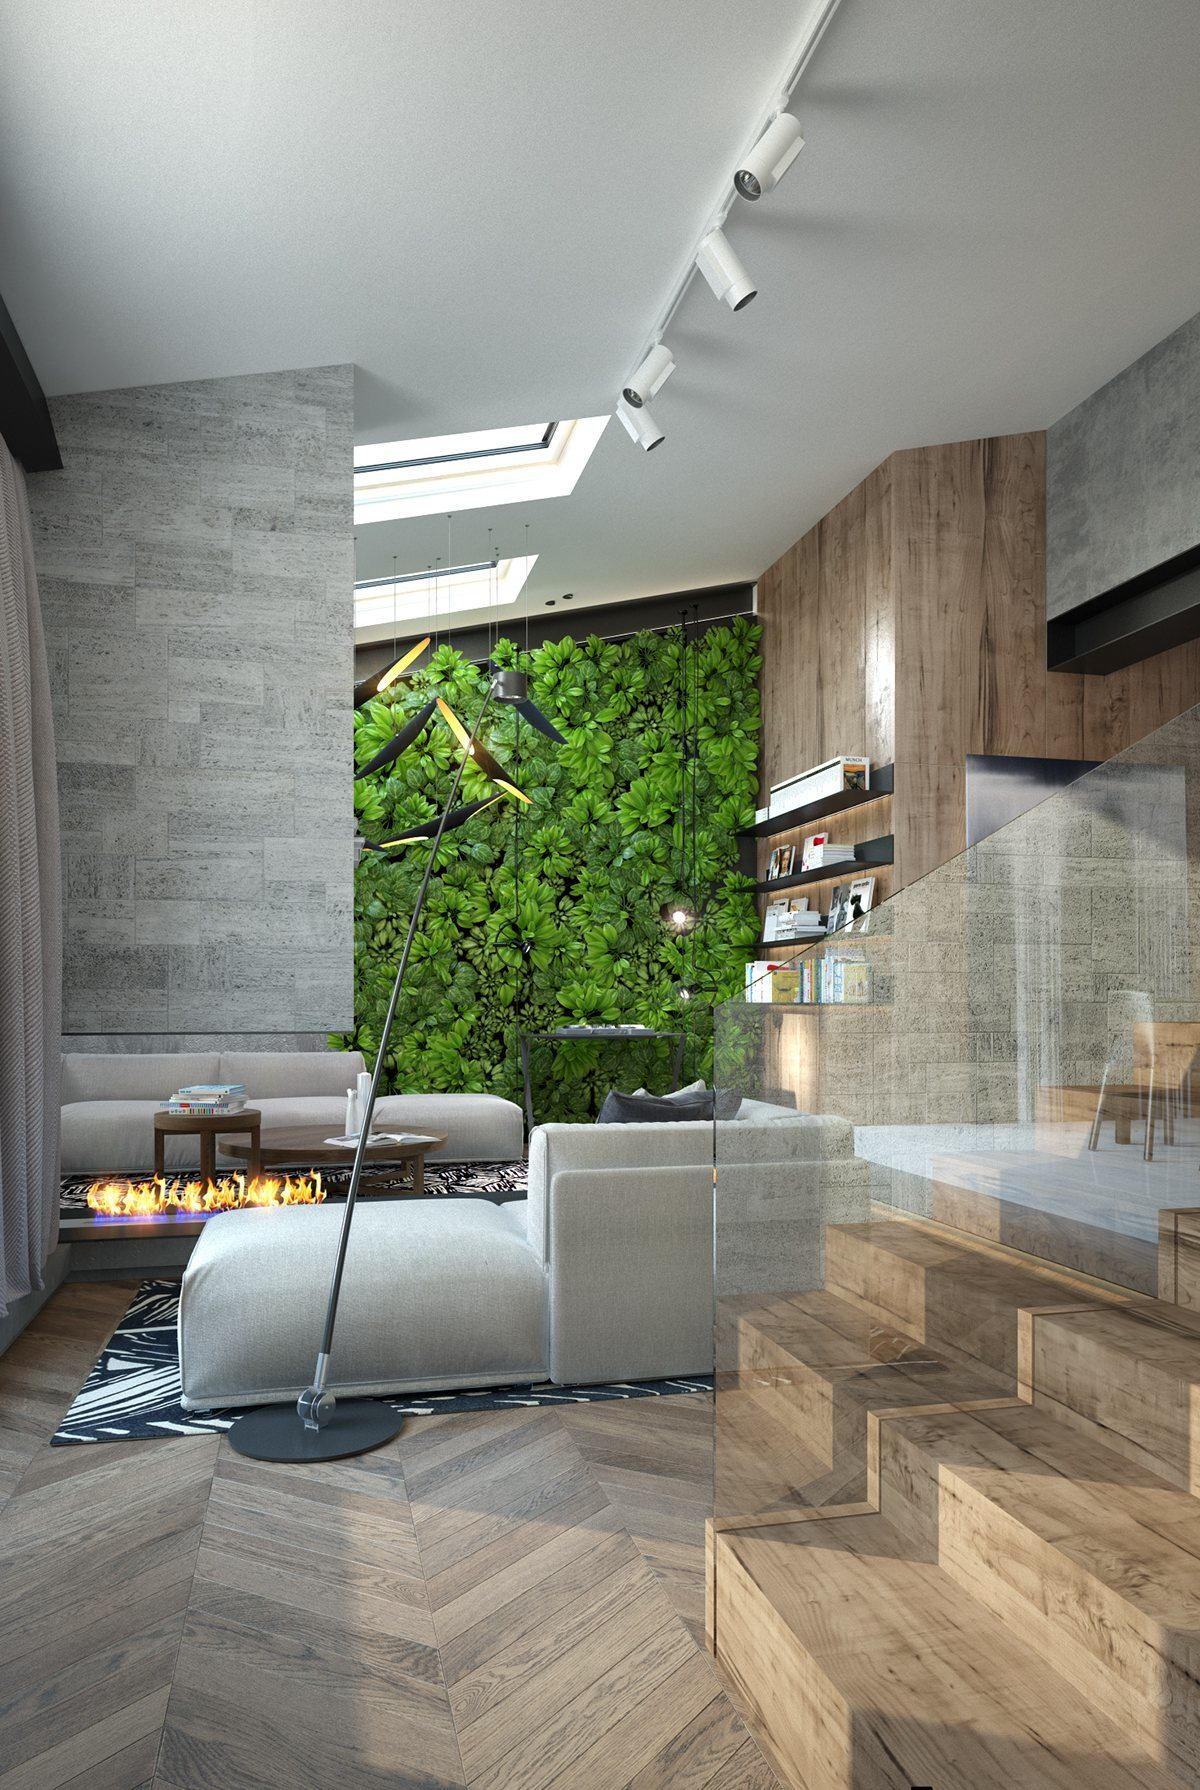 Vertical Garden Indoors - Homes with inspiring wall treatments and designer lighting